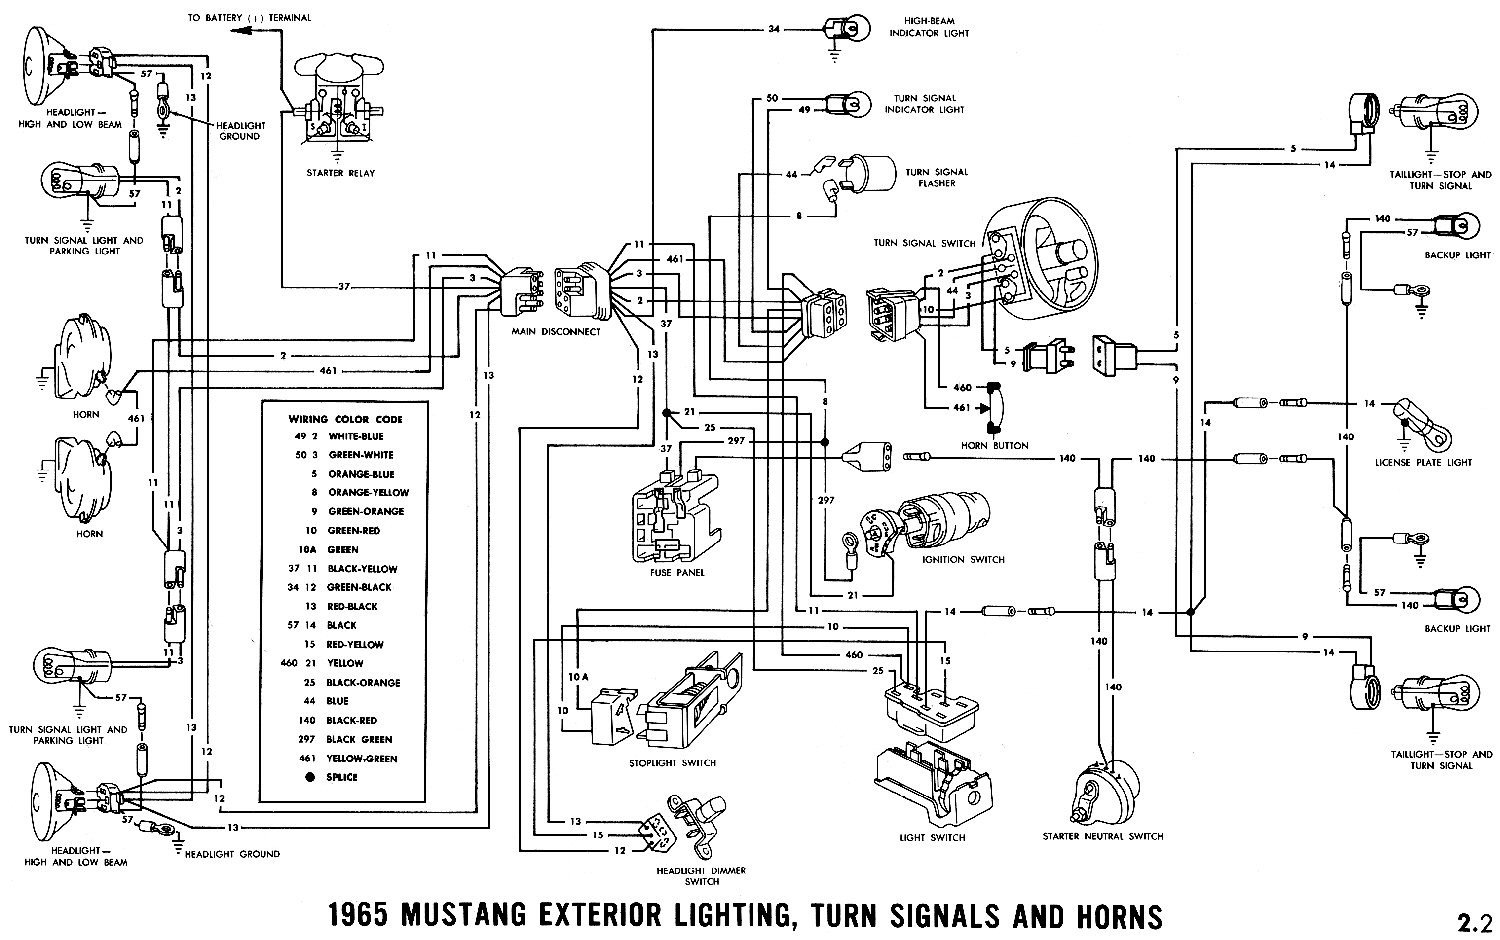 65 jeep cj5 ignition switch wiring smart wiring diagrams u2022 rh emgsolutions co 1965 cj5 wiring diagram 1971 Jeep Wagoneer Wiring-Diagram